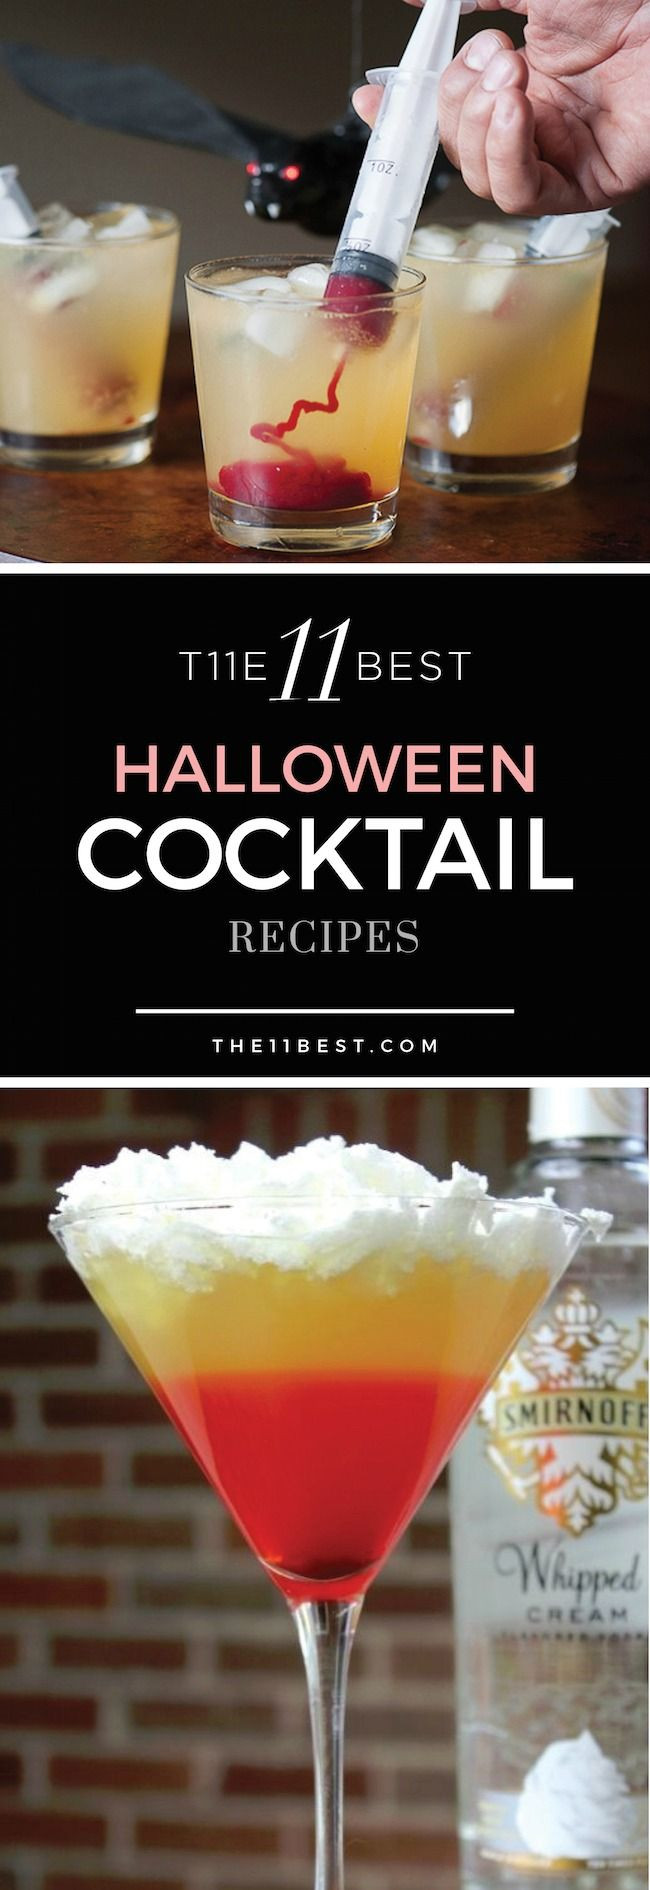 Halloween Alcoholic Drinks Recipes  Best 25 Halloween cocktails ideas on Pinterest